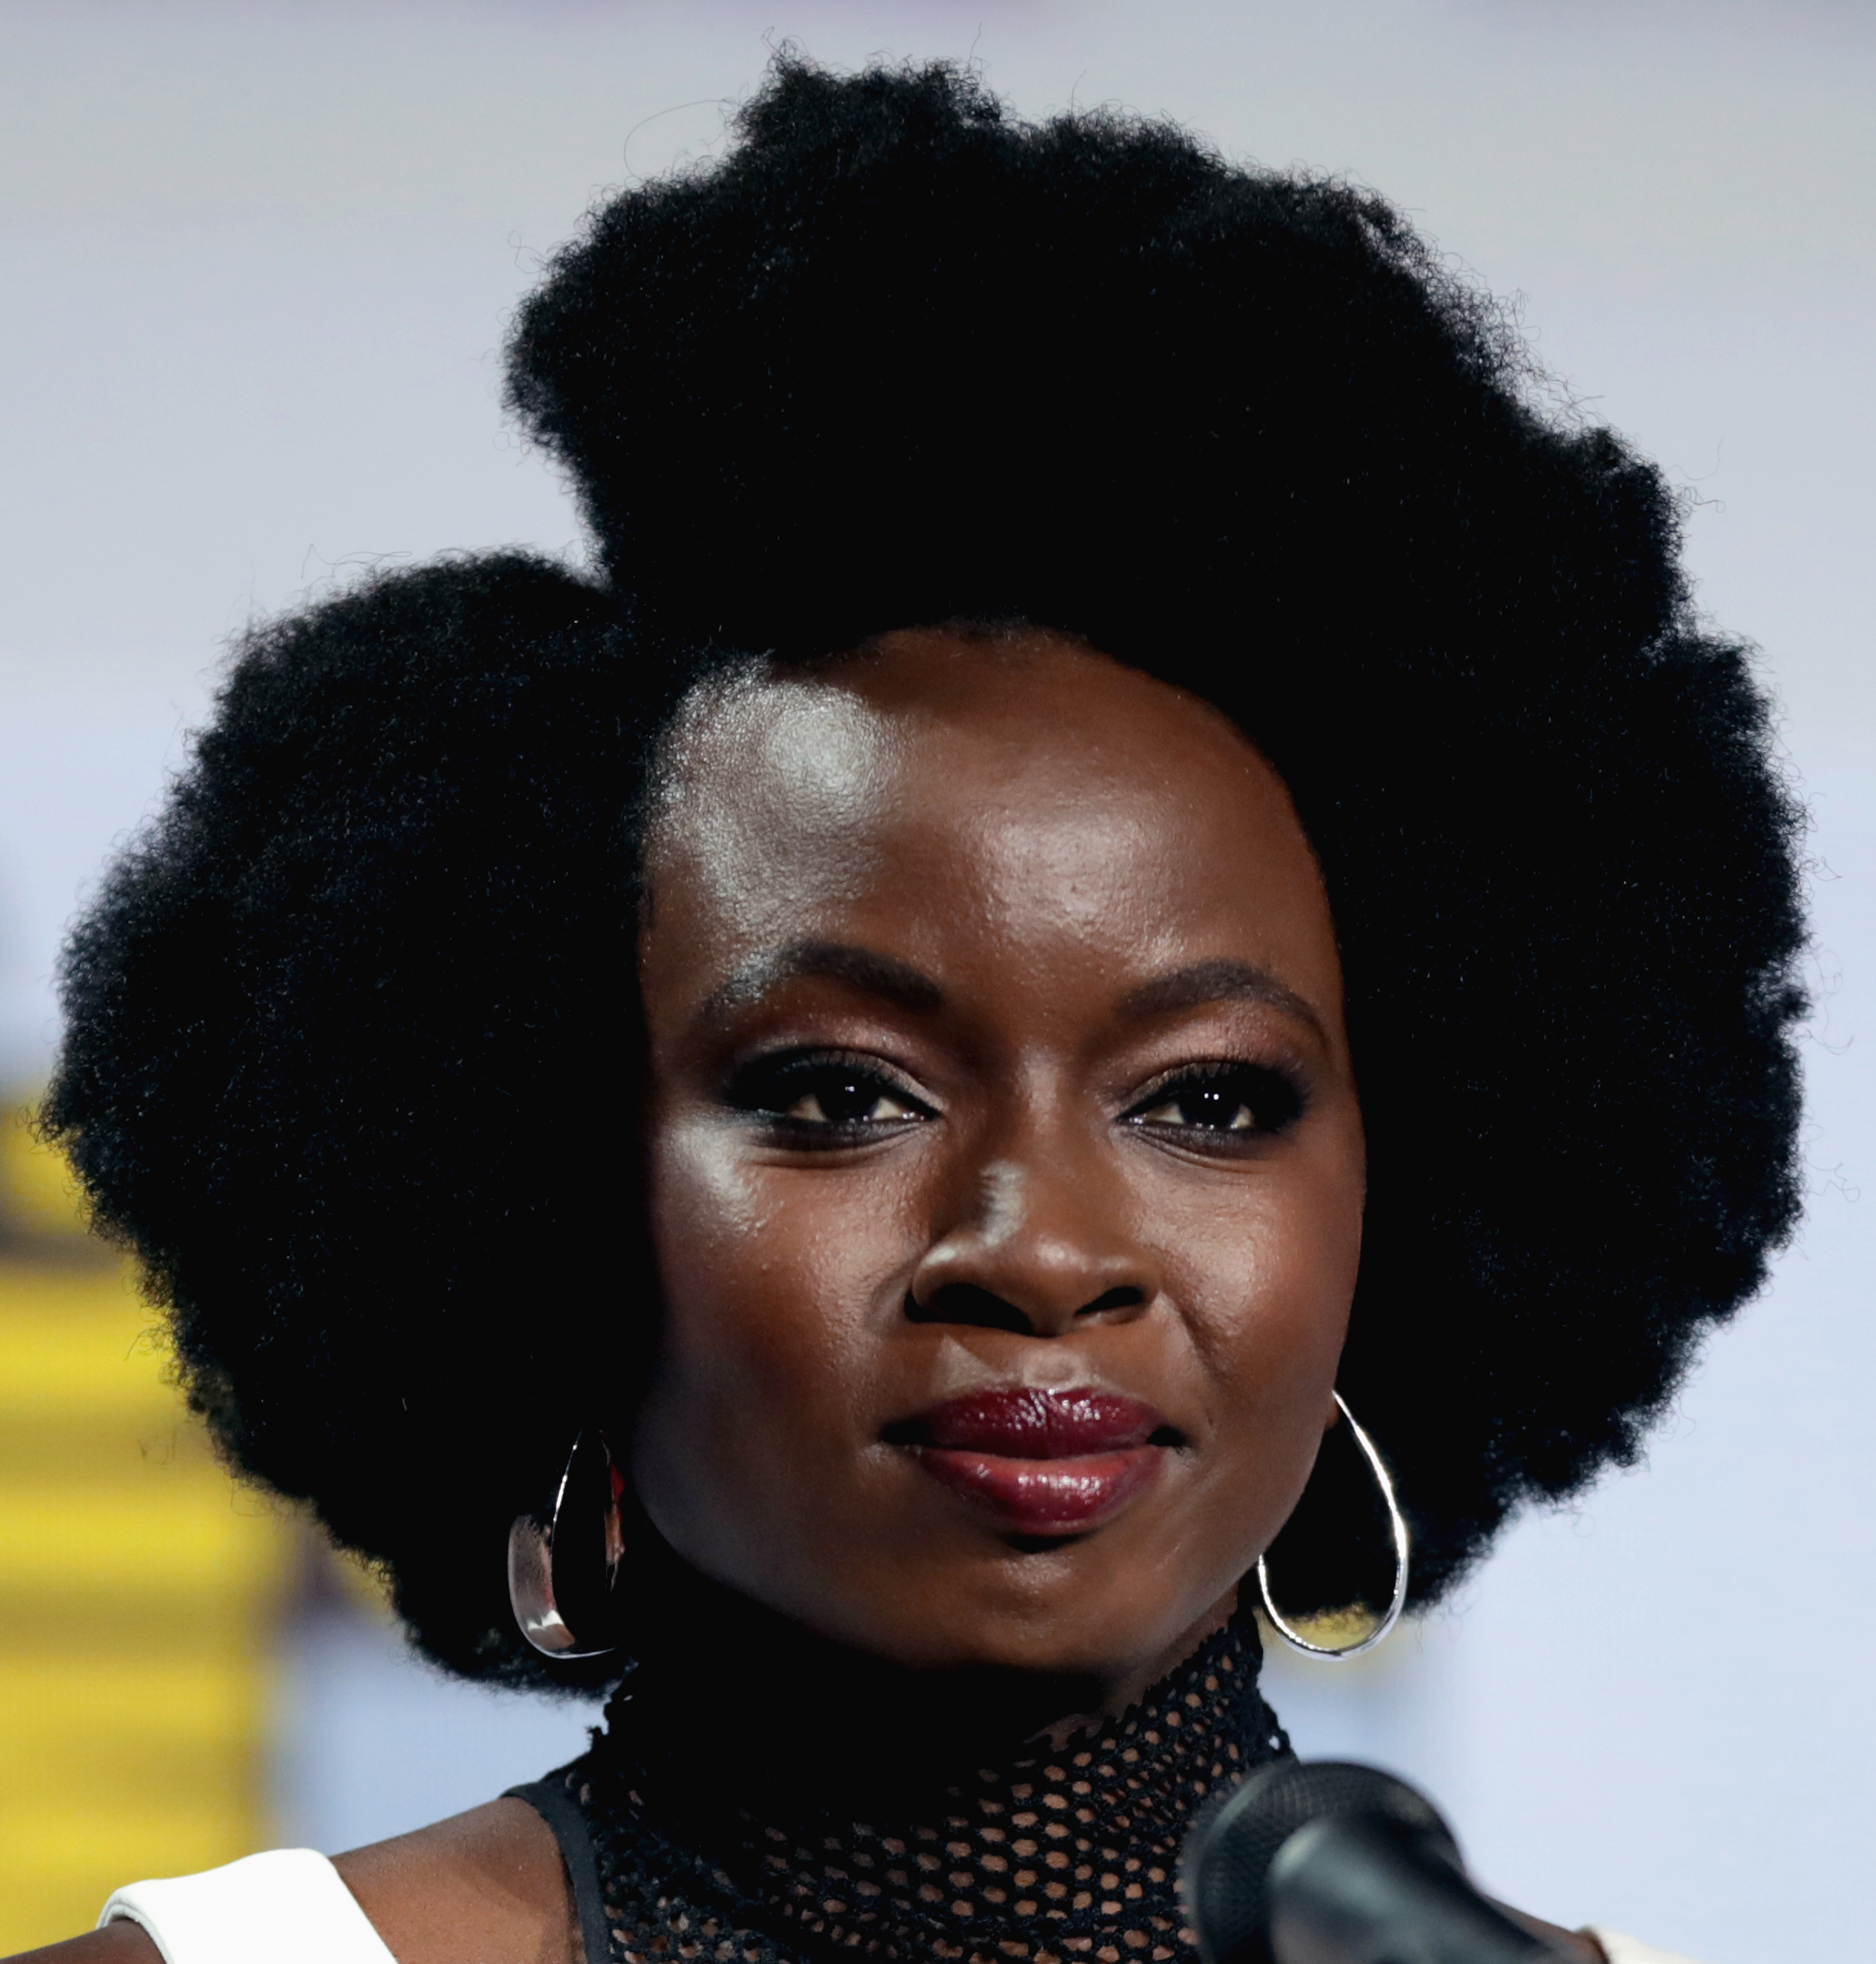 The 42-year old daughter of father (?) and mother(?) Danai Gurira in 2021 photo. Danai Gurira earned a  million dollar salary - leaving the net worth at 0.5 million in 2021